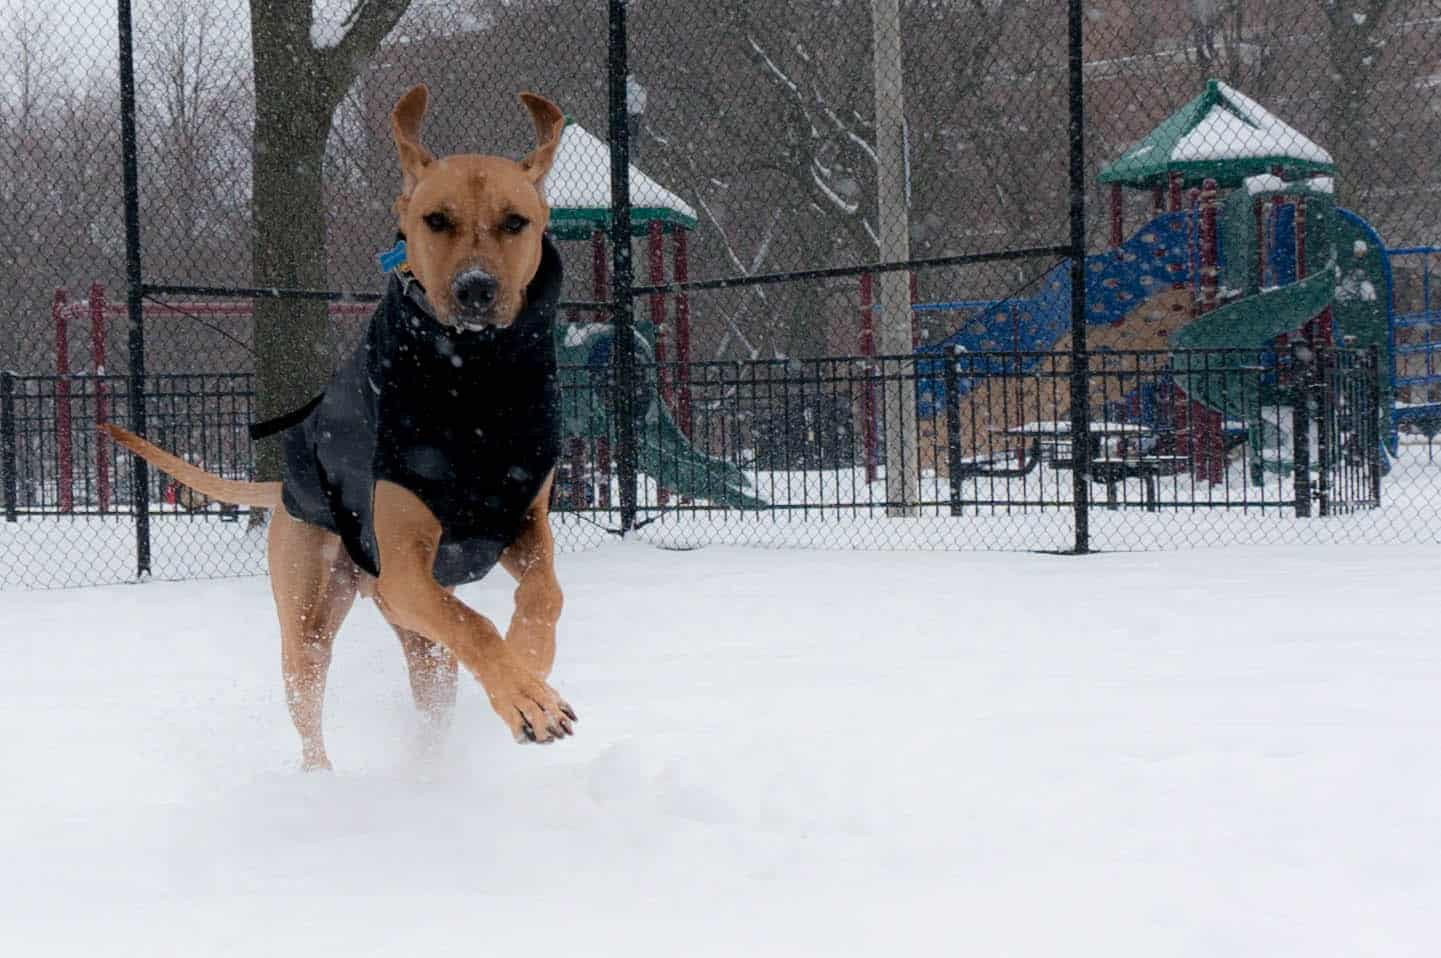 Rhodesian Ridgeback, marking our territory, dog blog, adventure, chicago, dogs, snow, winter